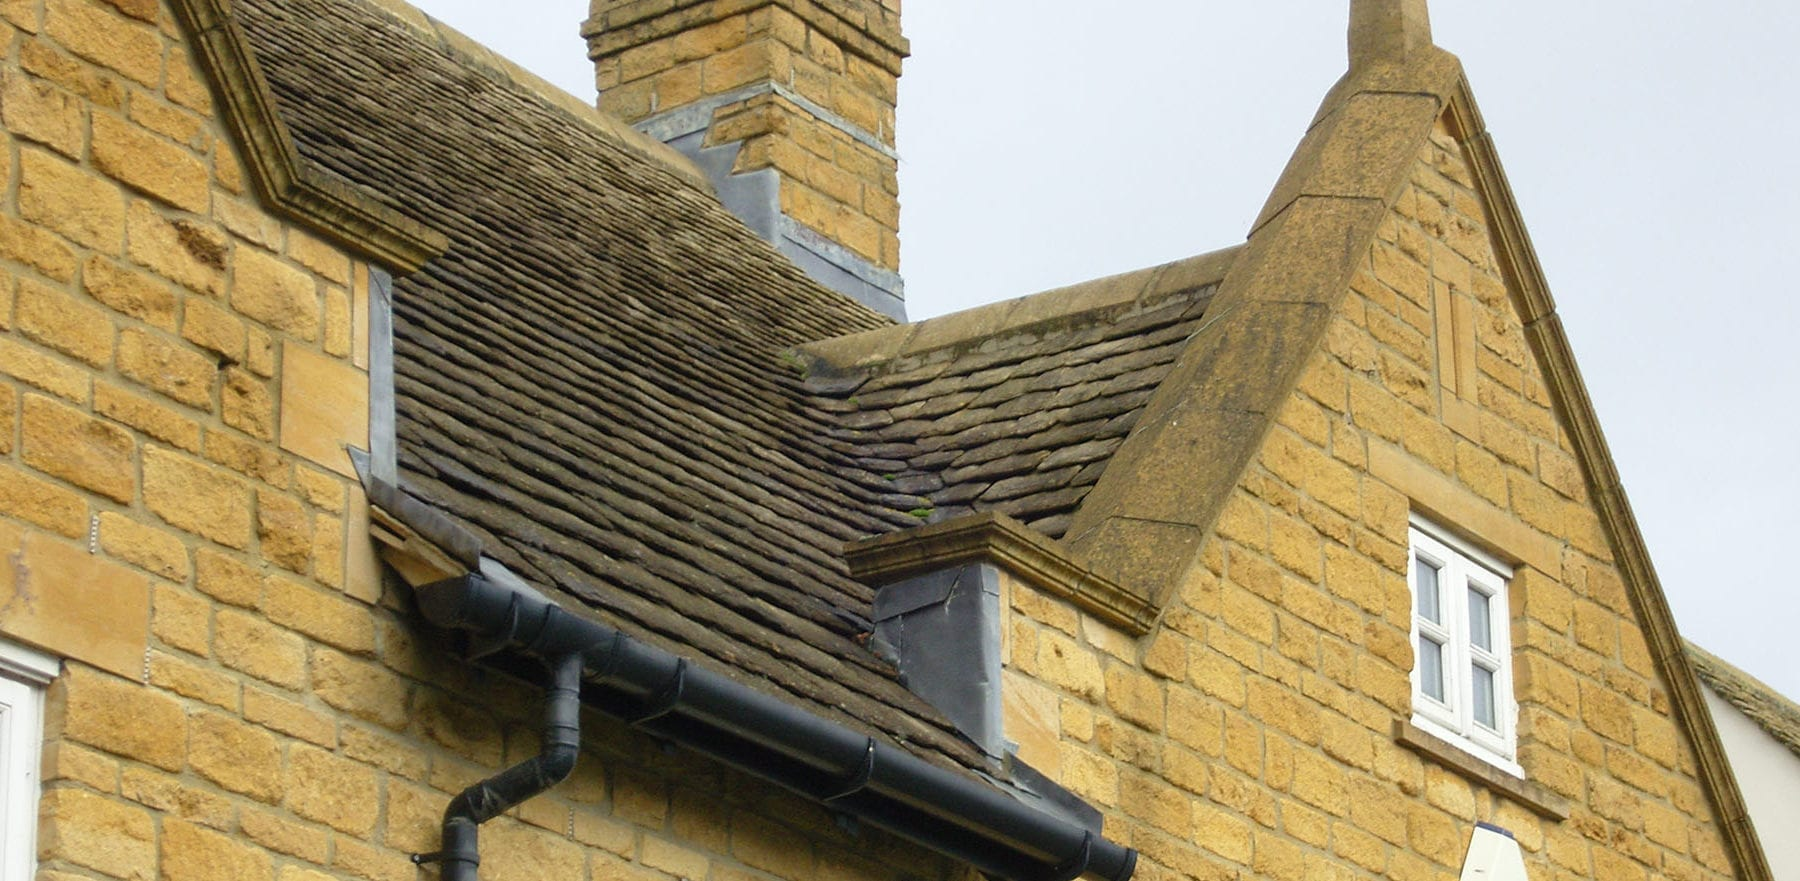 Lifestiles - Natural Stone Aged Roof Tiles - Cirencester, England 3